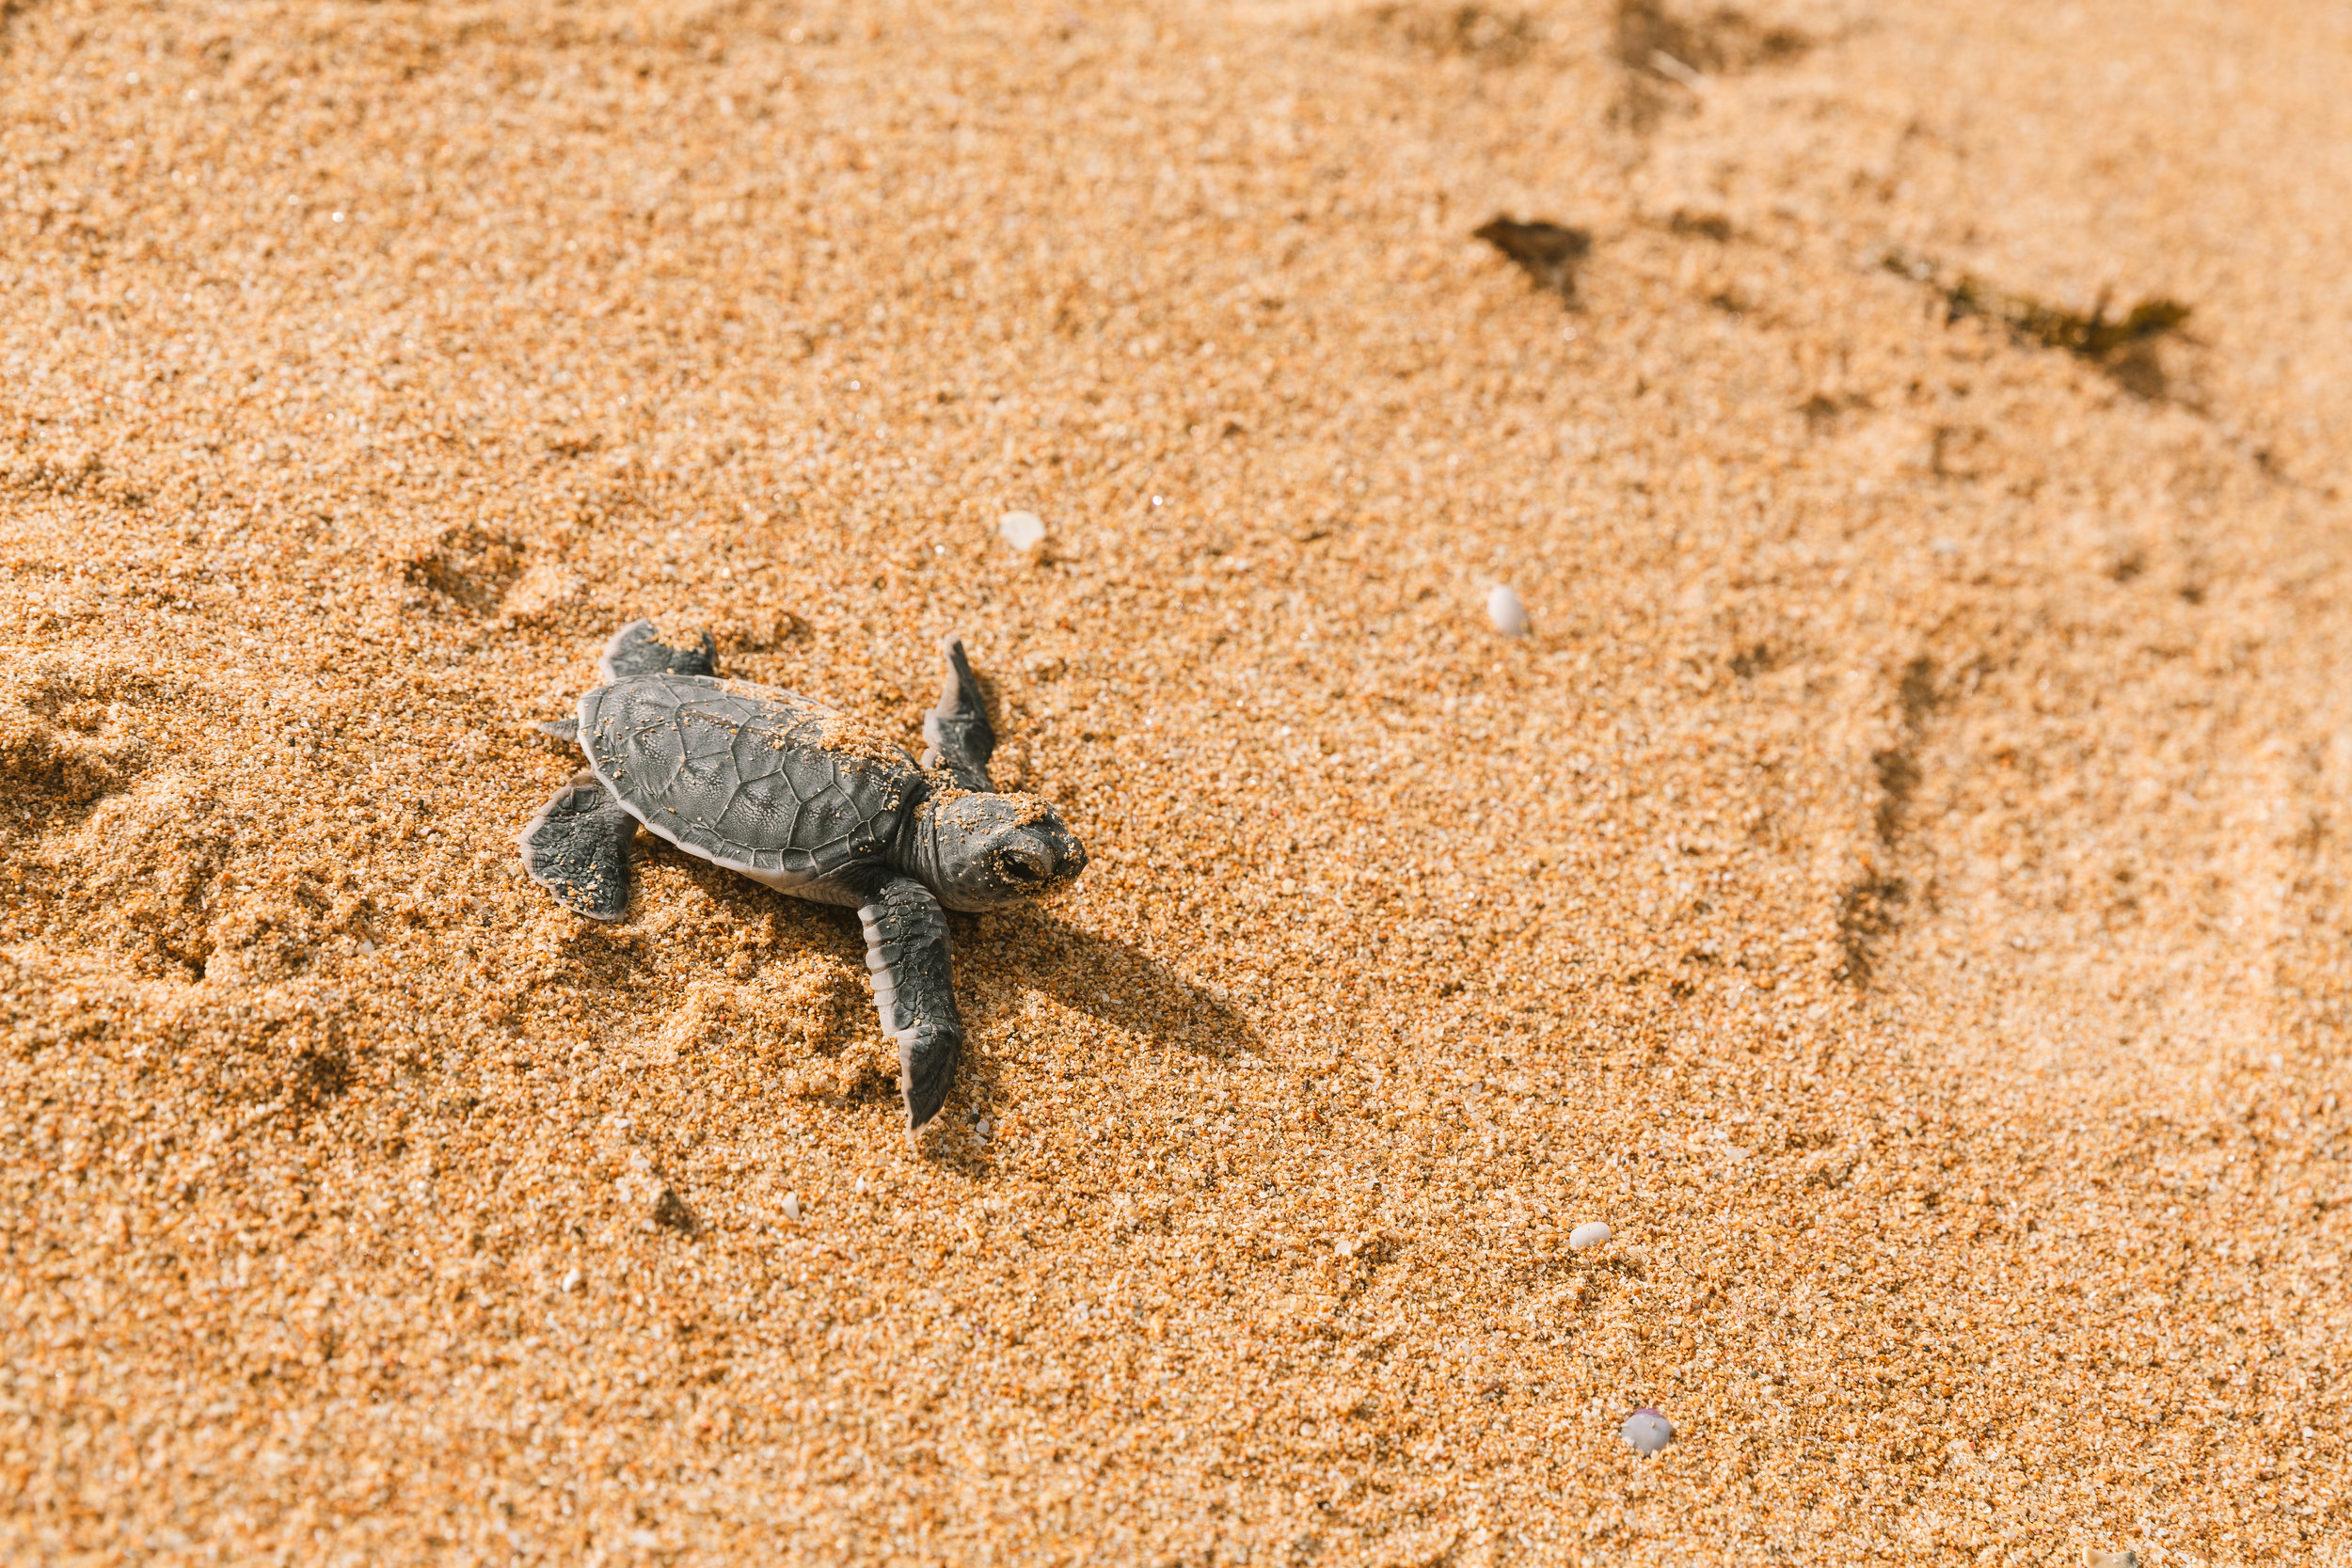 lamu_kenya_ashlee_oneil_photo_sea_turtles.jpg